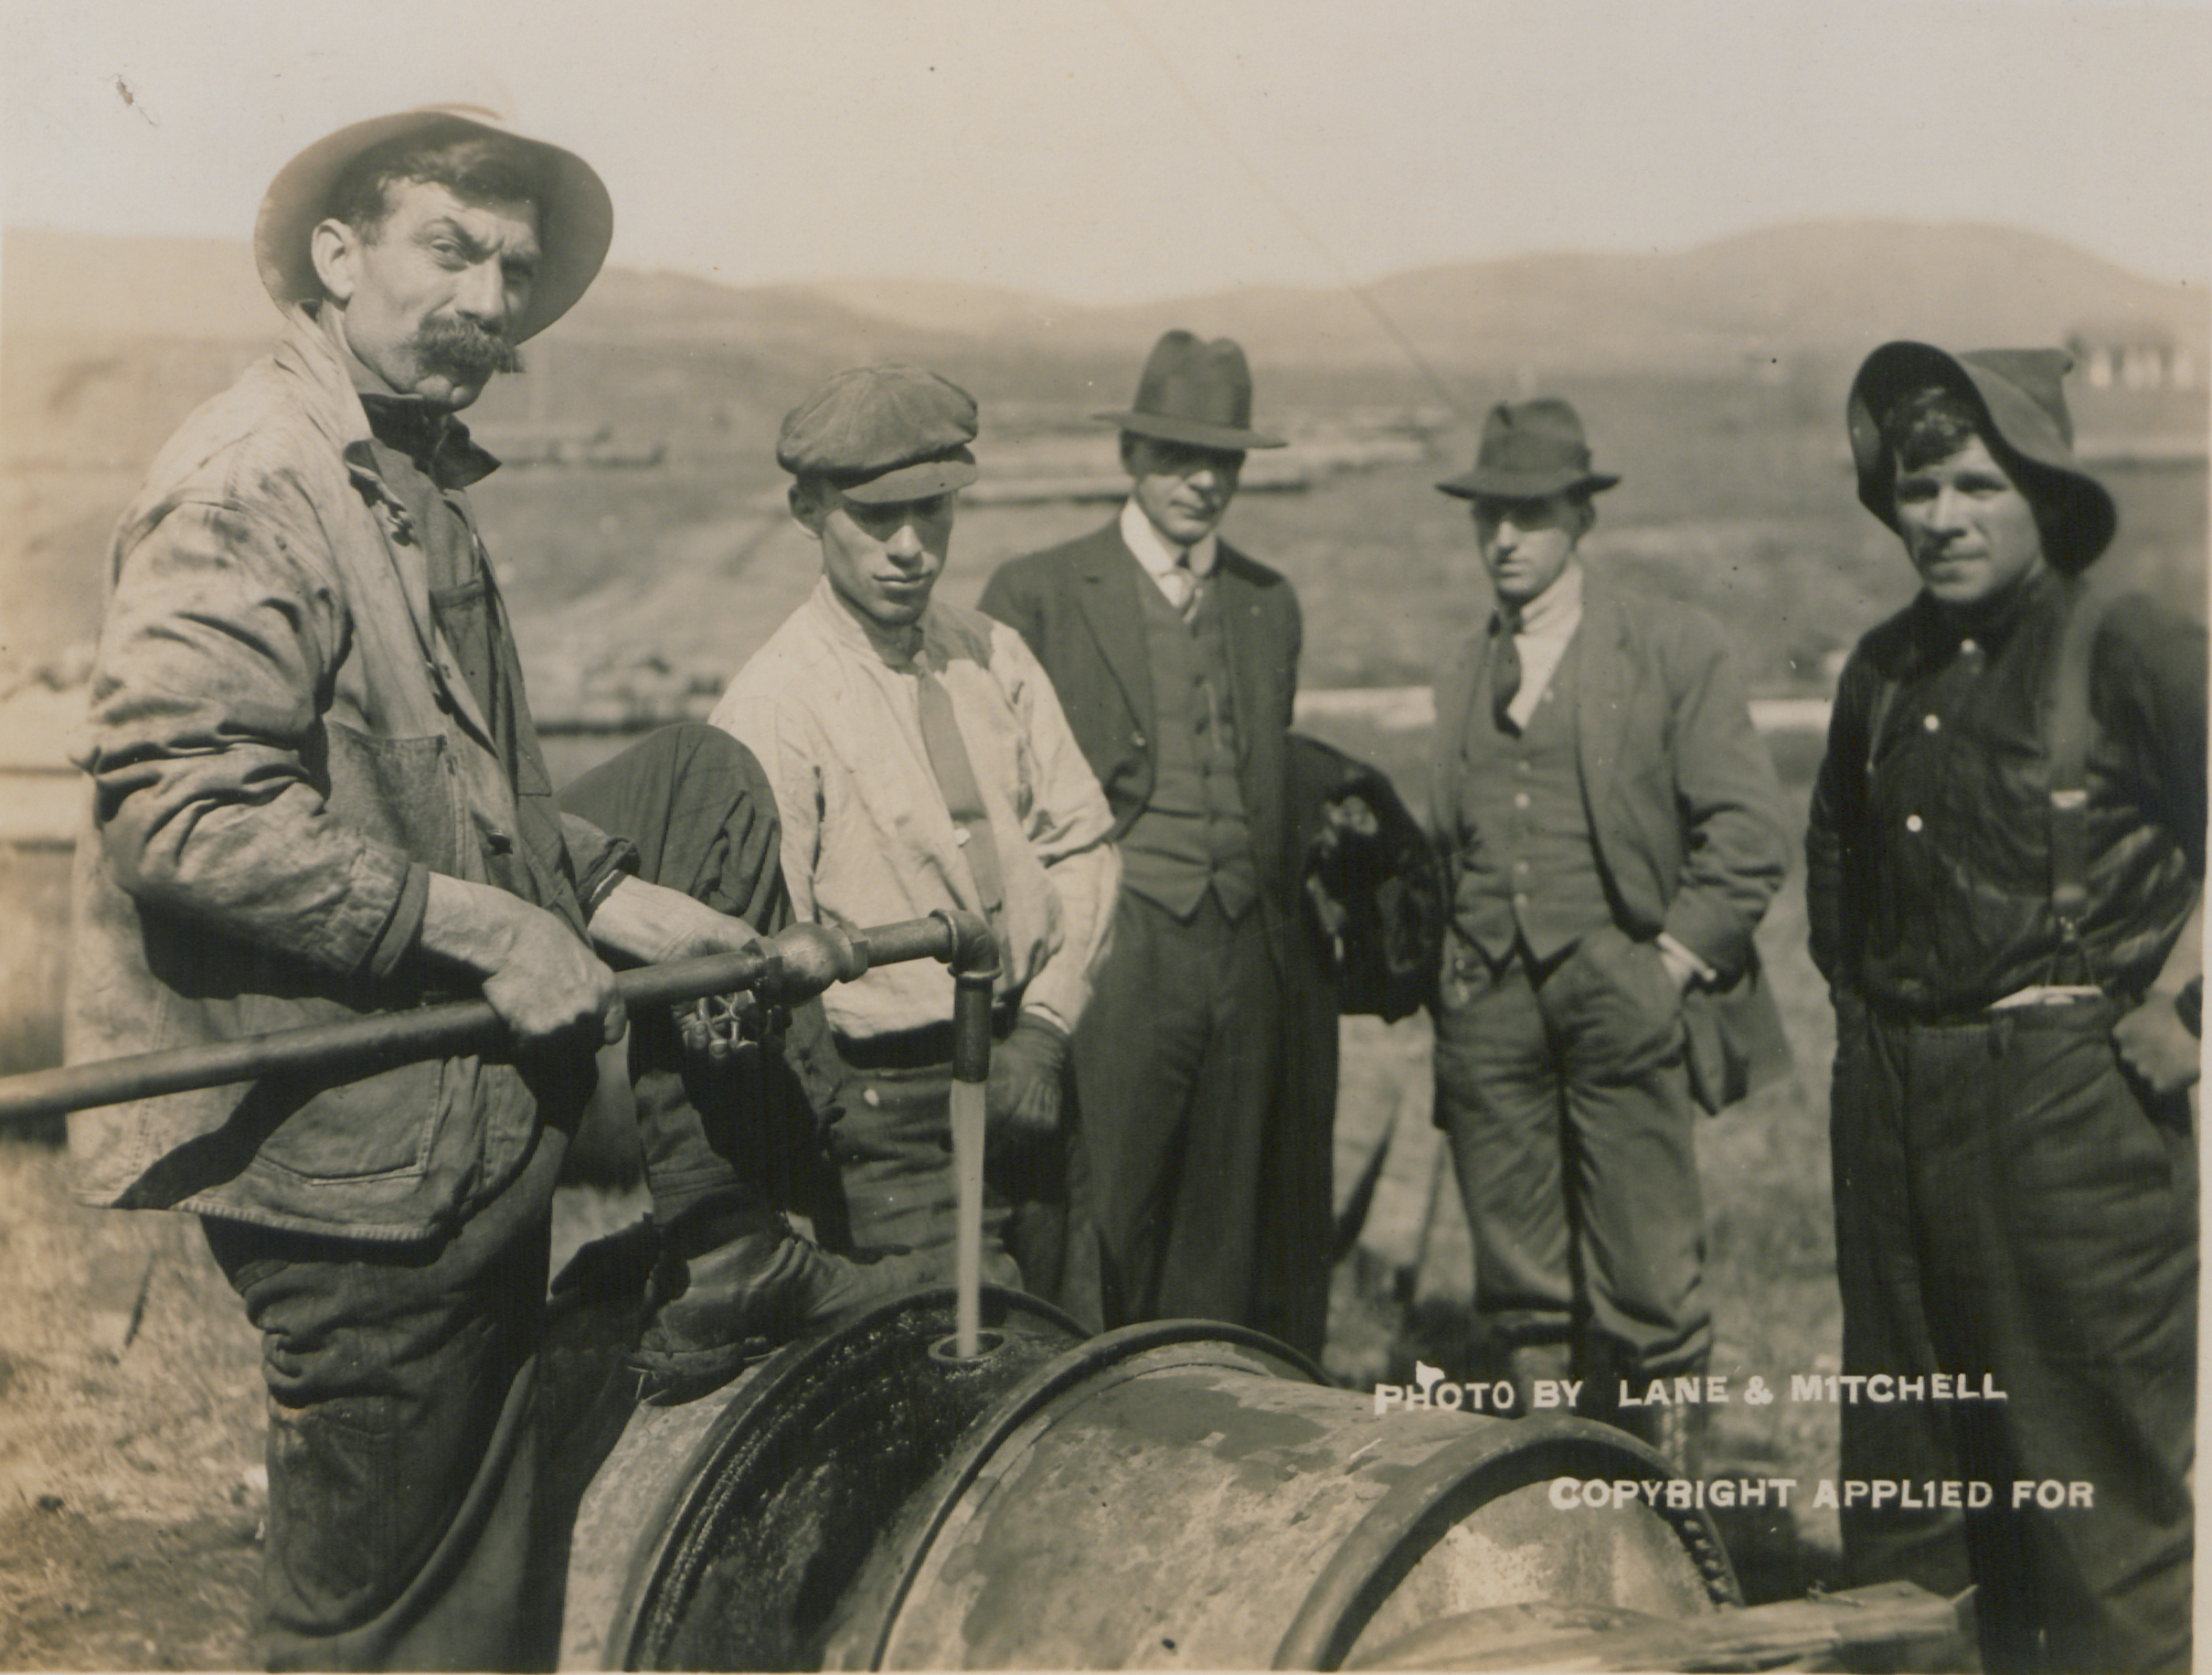 A man feeds oil into a drum using a pipe. Four other men (two working, two in suits) look on.